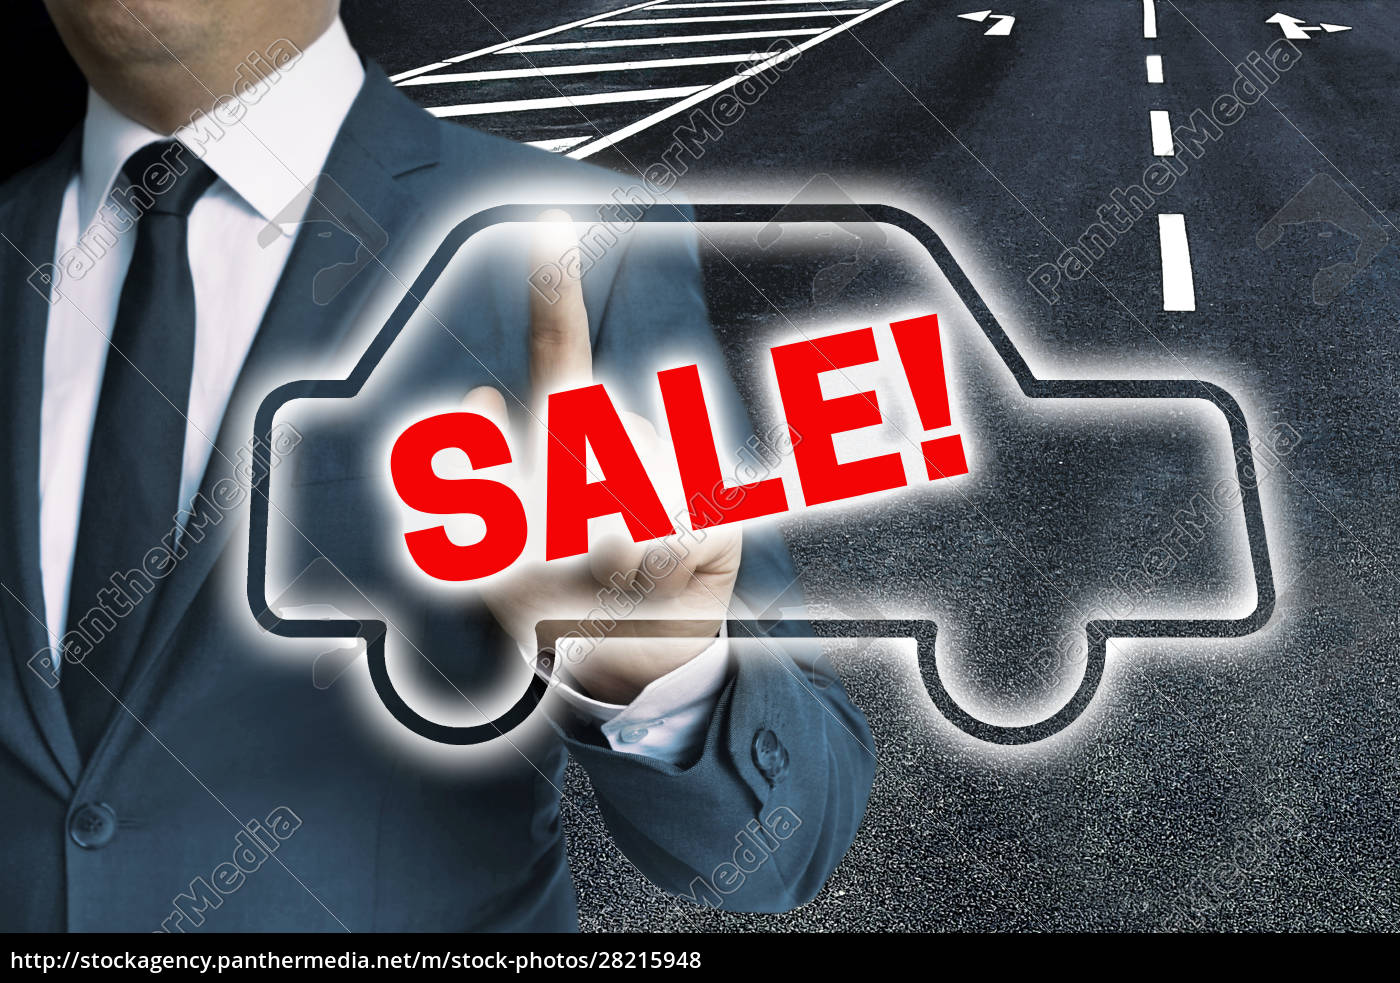 sale!, touchscreen, is, operated, by, man - 28215948